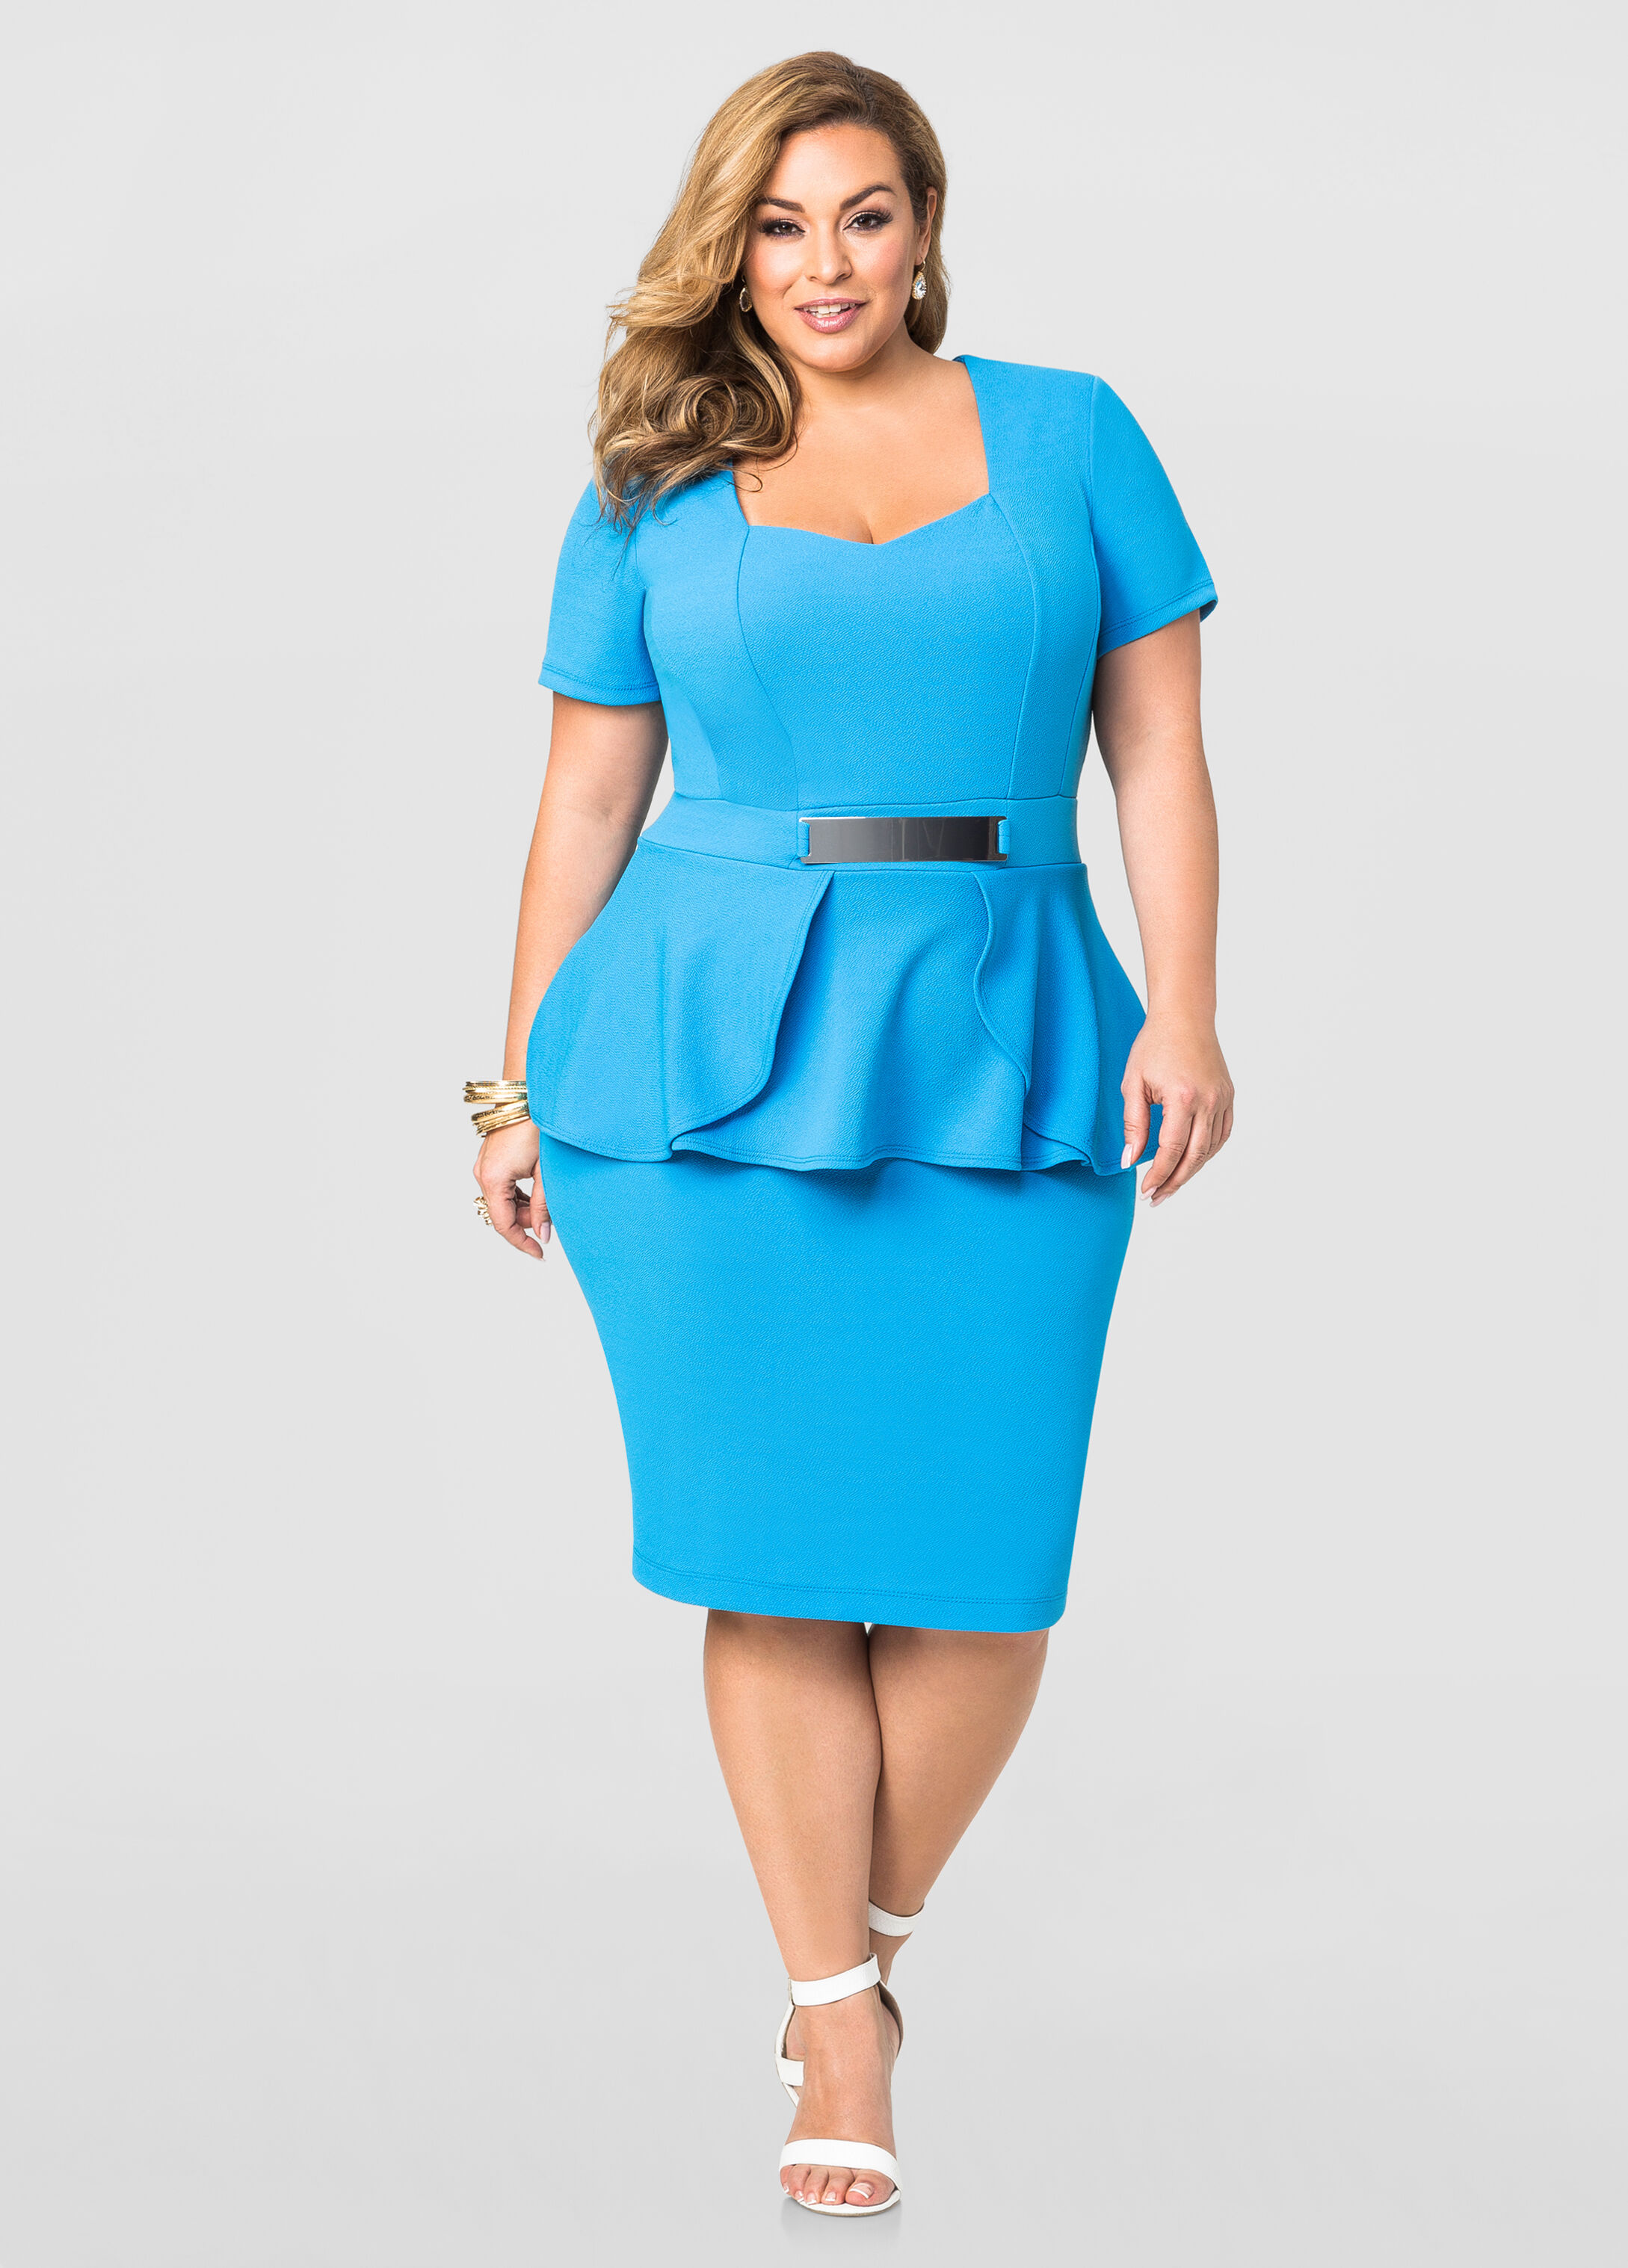 Gold Plate Peplum Dress-Plus Size Dresses-Ashley Stewart-010-11269X